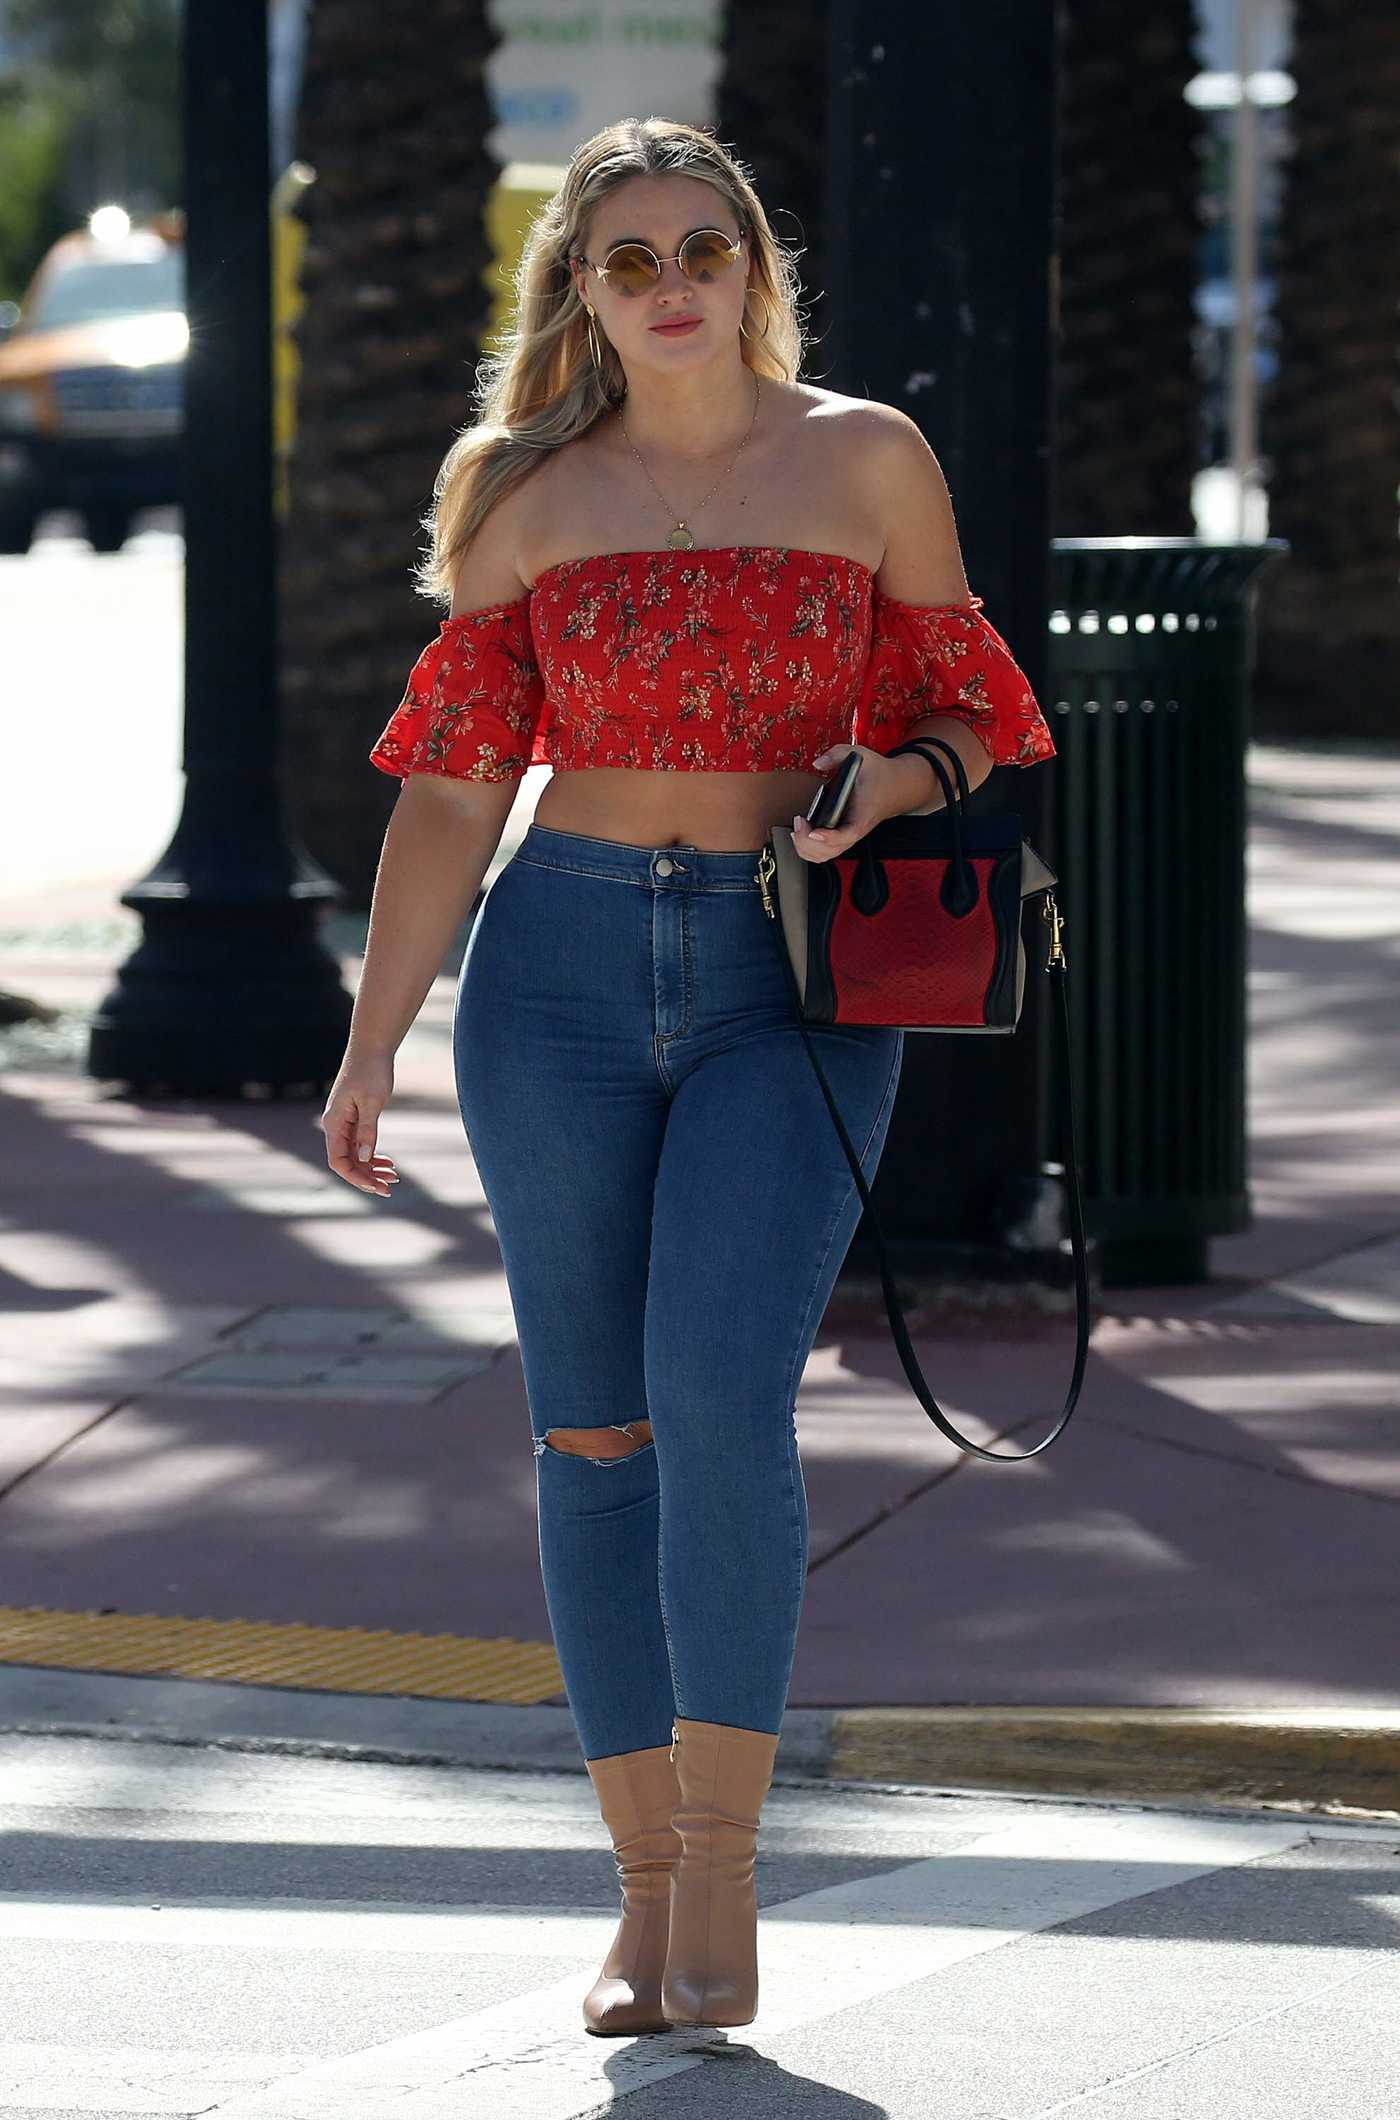 Iskra Lawrence in a Red Blouse Was Seen Out in Miami 12/11/2018